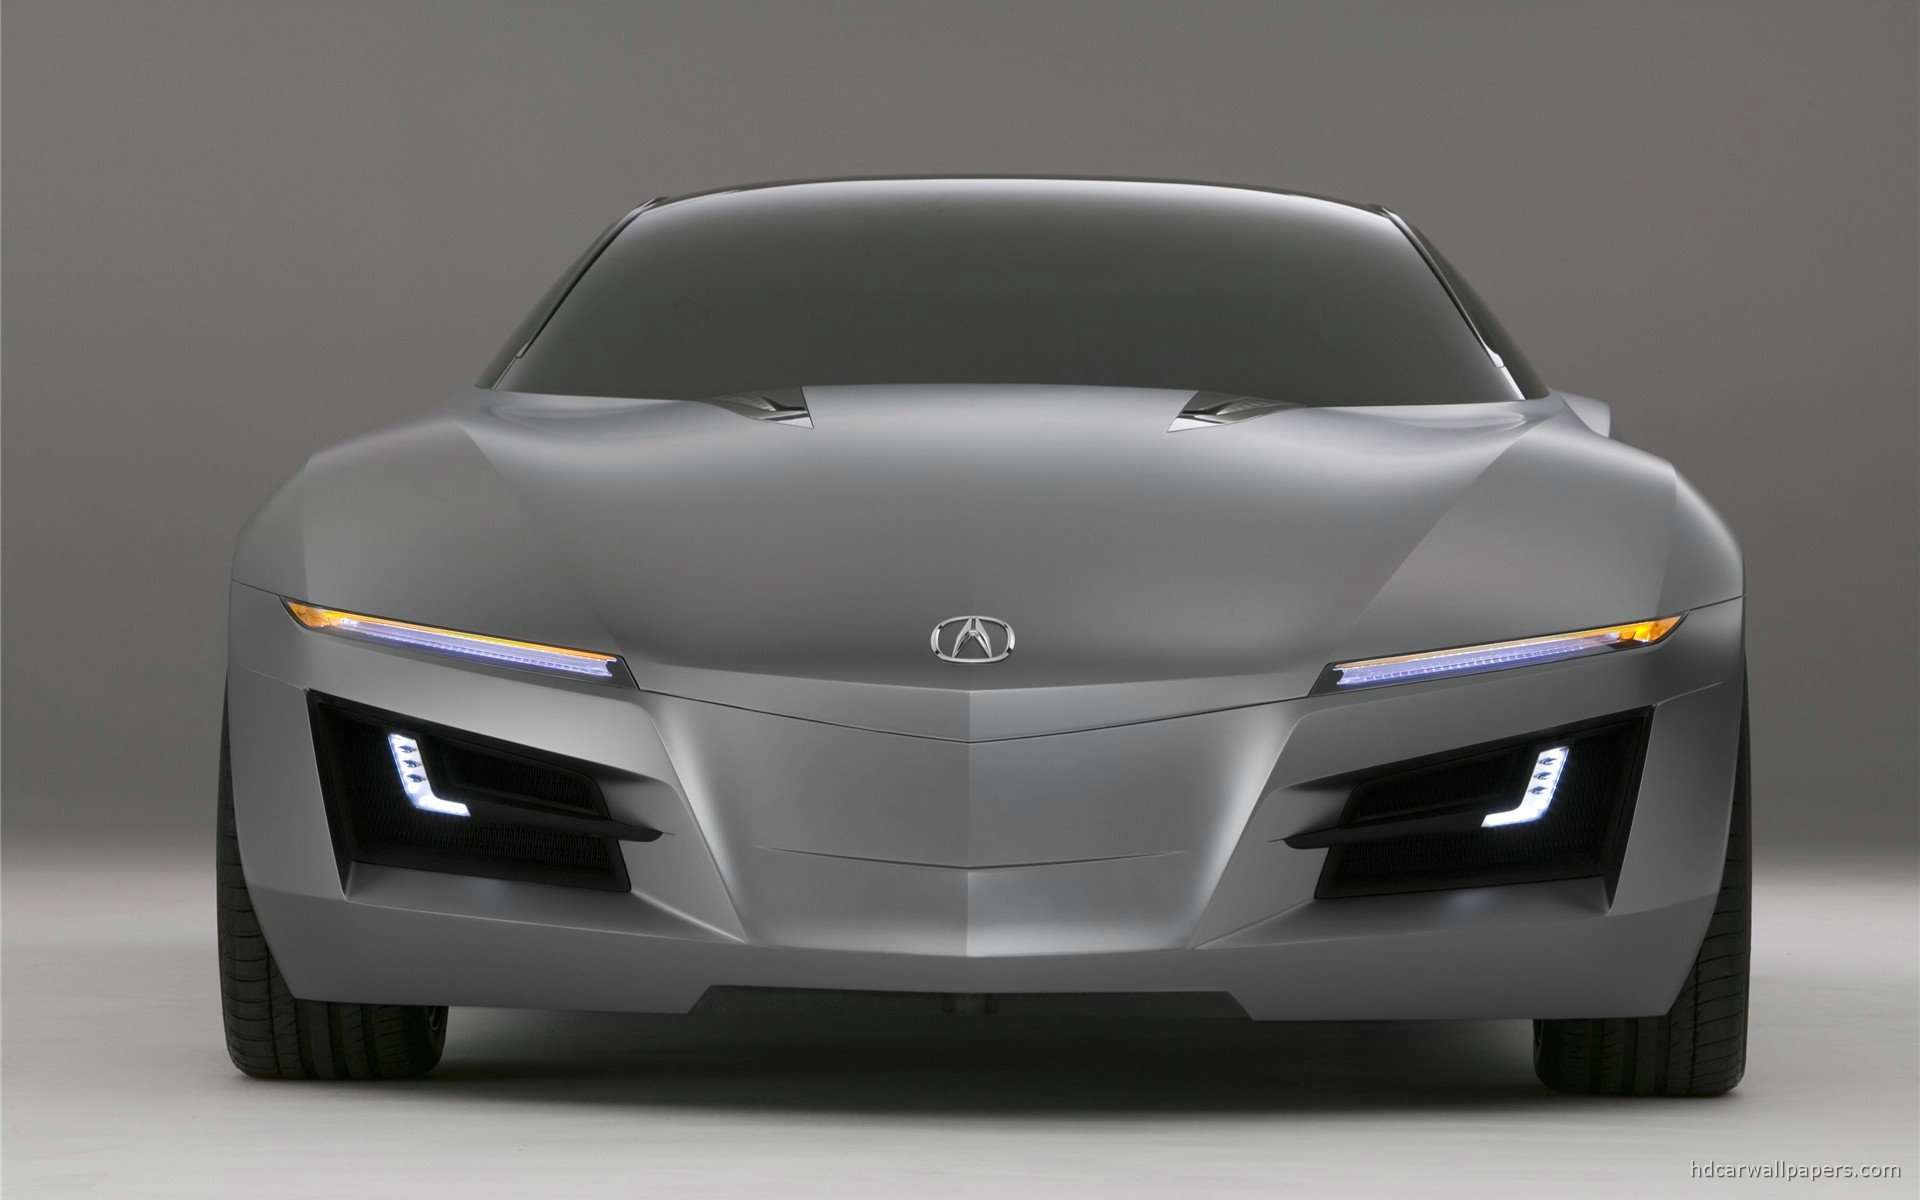 Audi Sports Car Wallpaper Acura Advanced Sports Car Concept 2 Wallpaper Hd Car